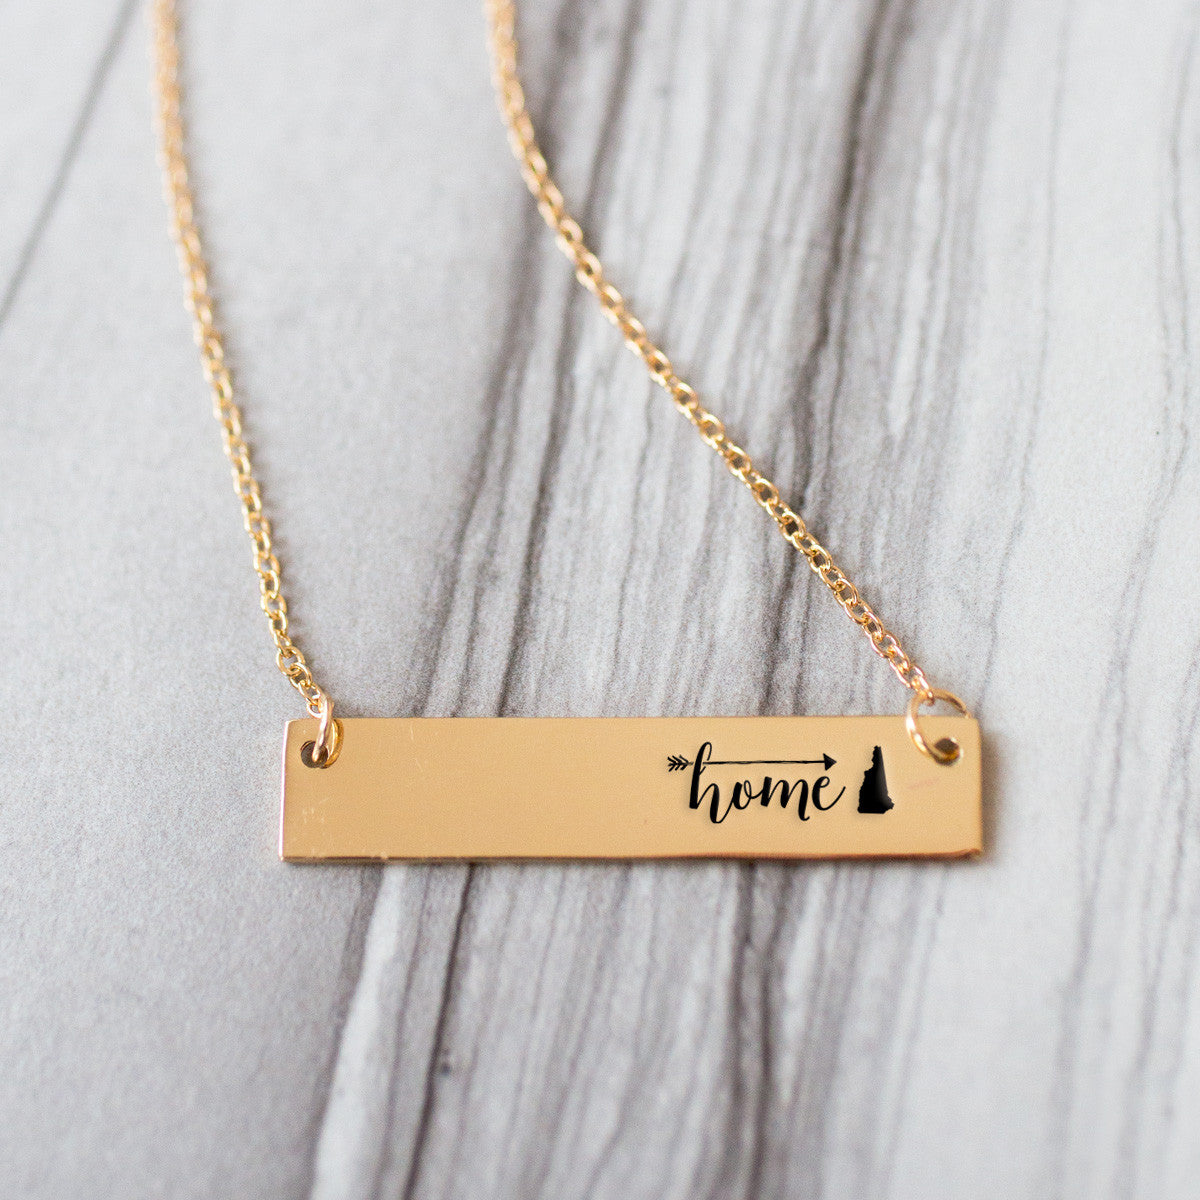 Home is New Hampshire Gold / Silver Bar Necklace - pipercleo.com